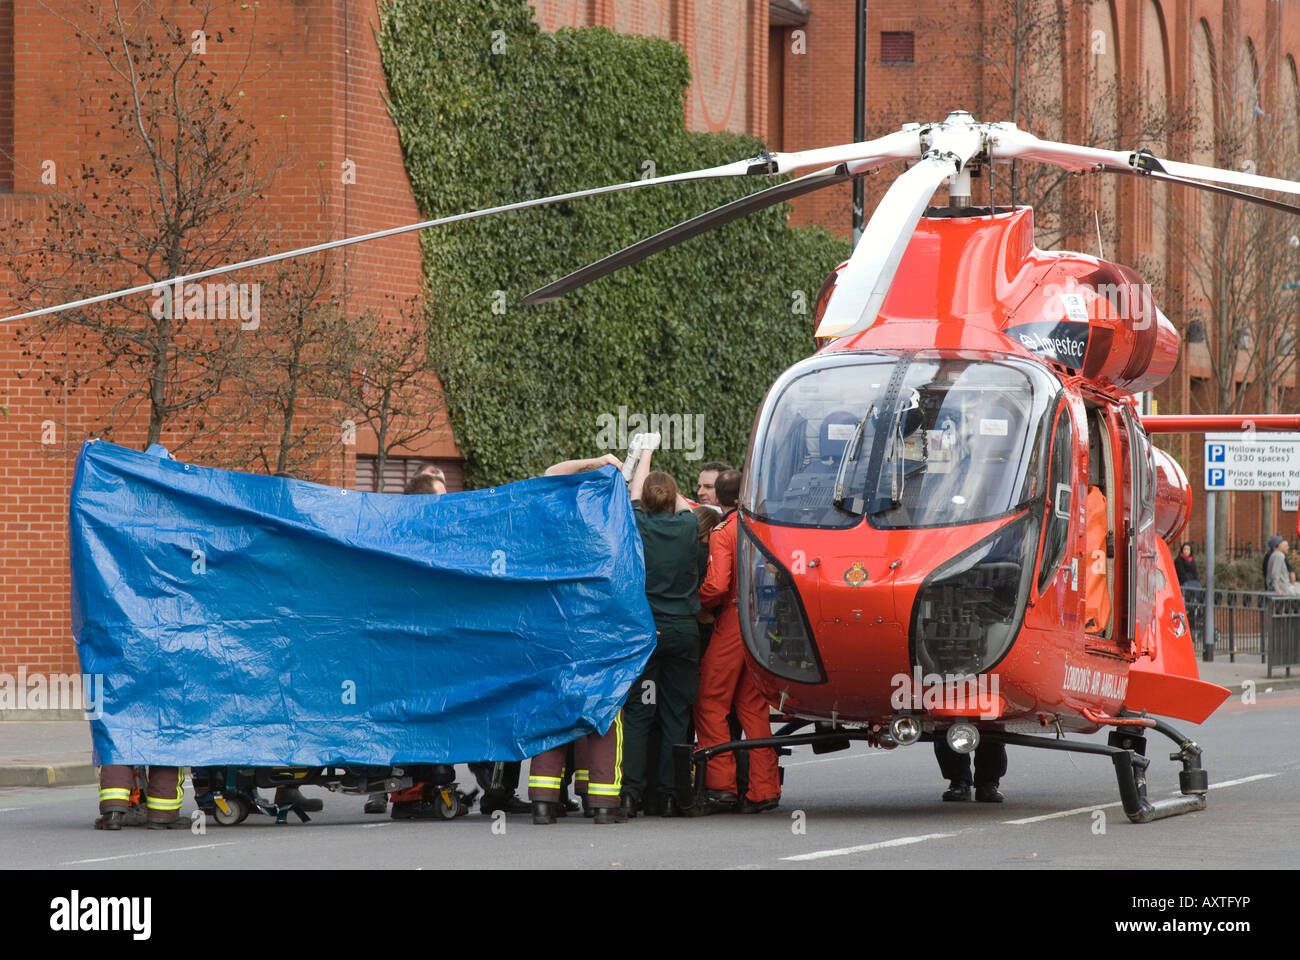 Emergency services personnel preparing road traffic accident victim for transportation by air ambulance - Stock Image